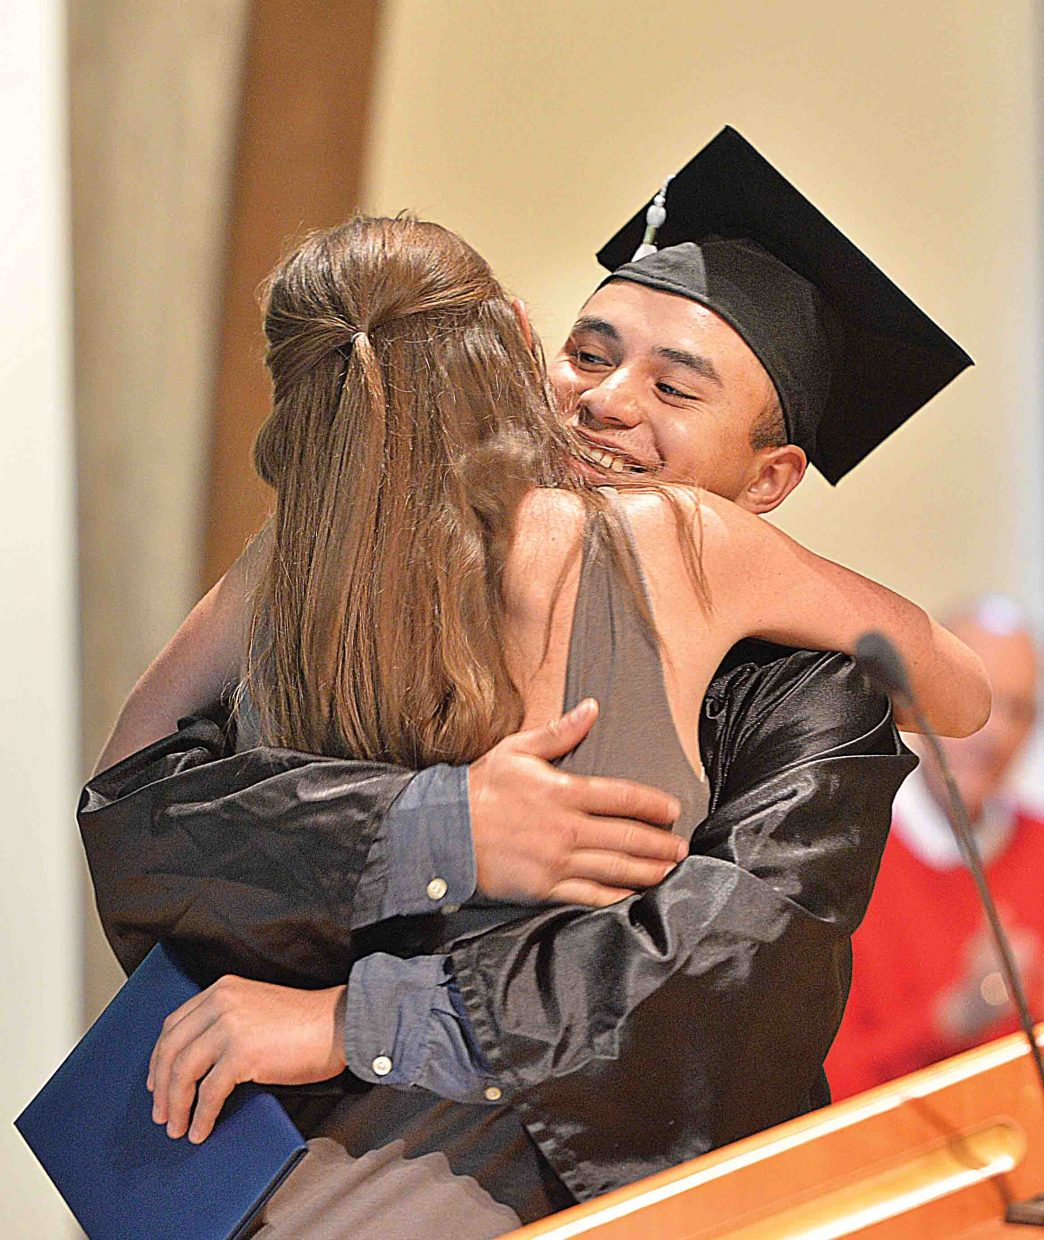 Yampa Valley High School graduating senior Jose Jimenez gets a hug from diploma presenter Molly Lotz at the school's graduation ceremony Friday afternoon at the Bud Werner Memorial Library In Steamboat Springs. The school honored eight seniors Friday as part of it's annual graduation ceremony.